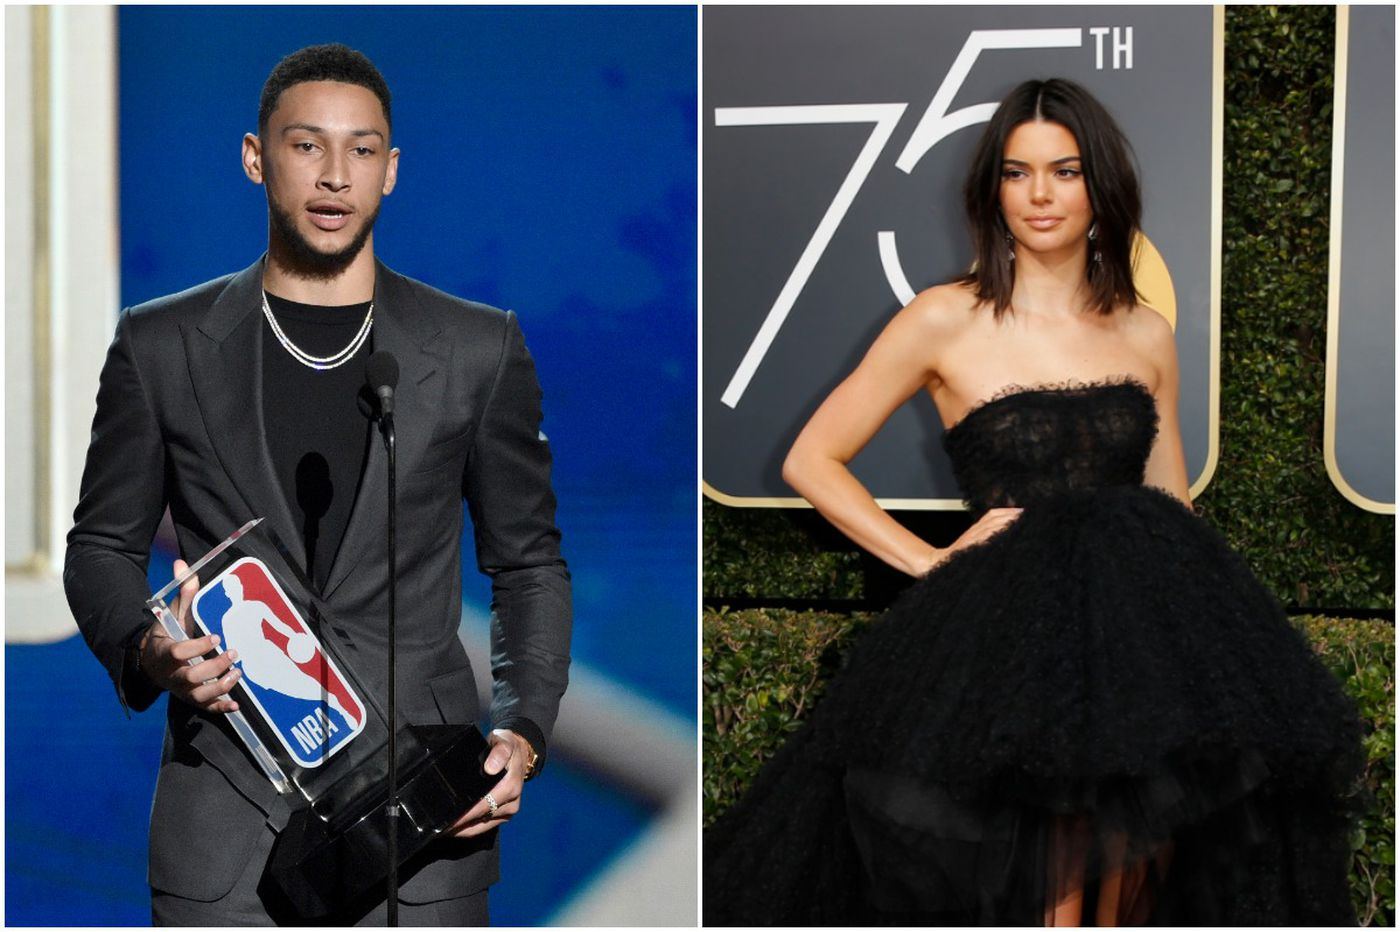 Ben Simmons and Kendall Jenner's summer romance is done, reports say